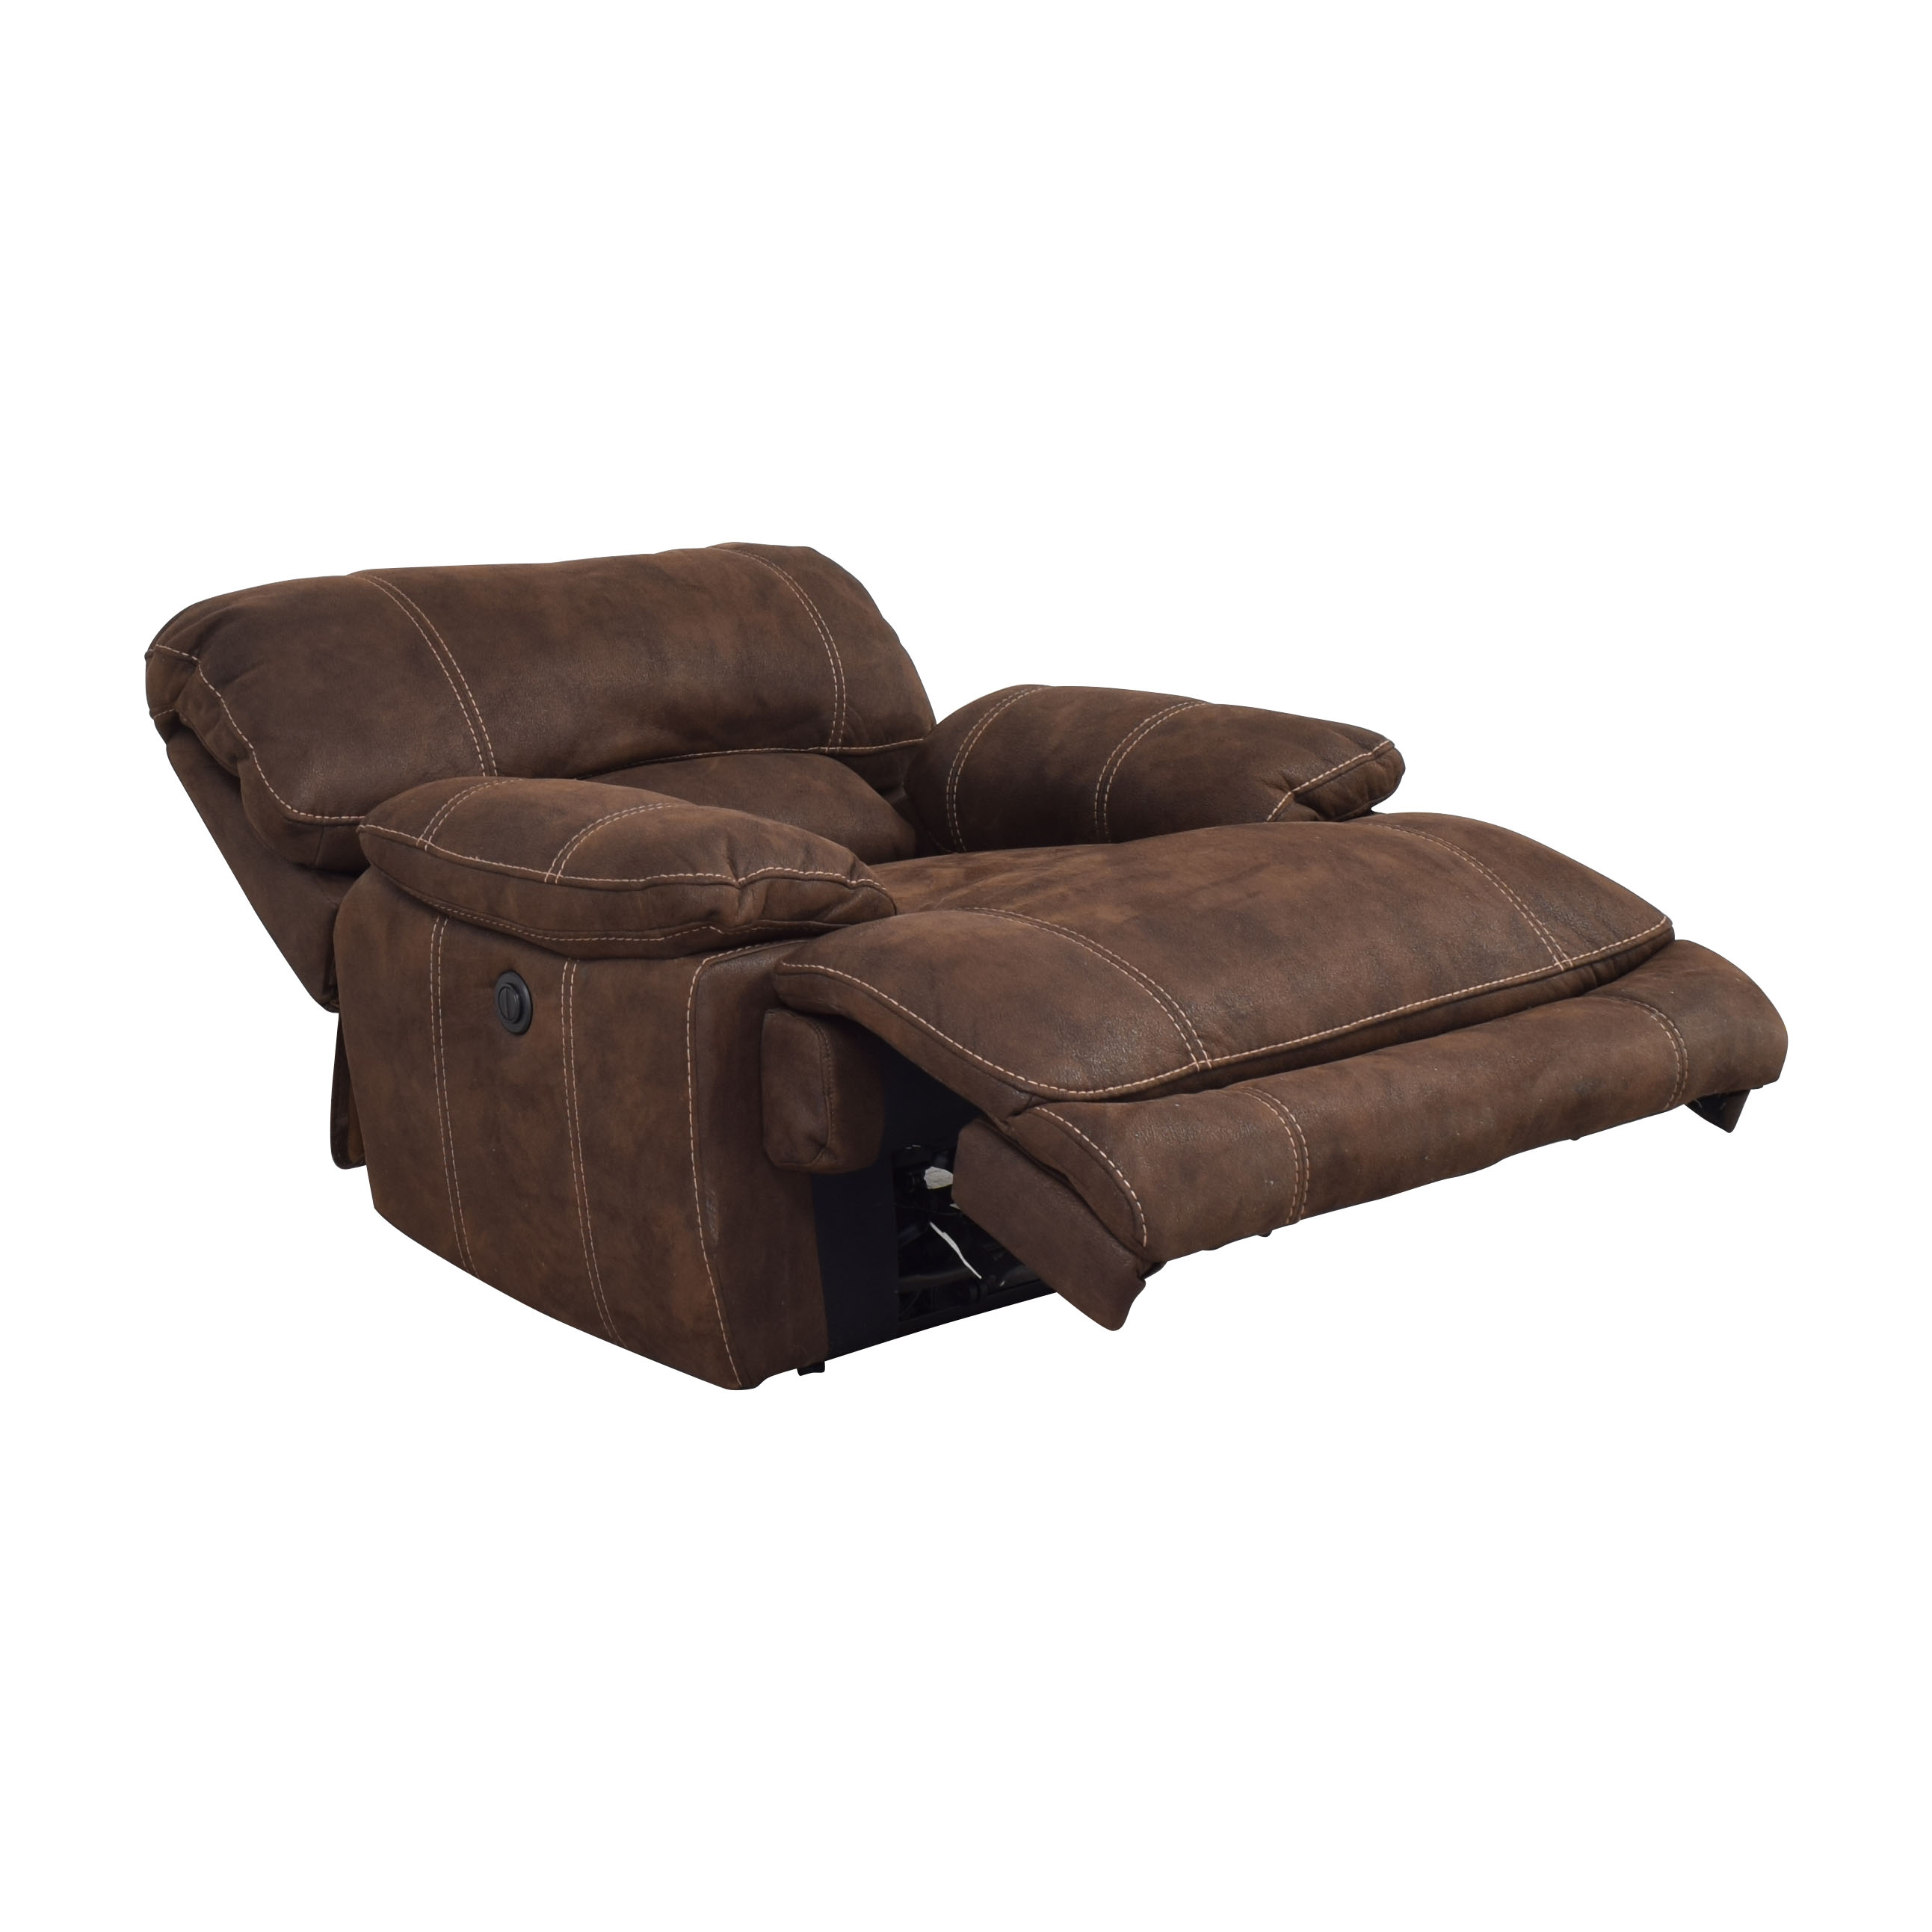 Macy's Macy's Upholstered Recliner Chairs